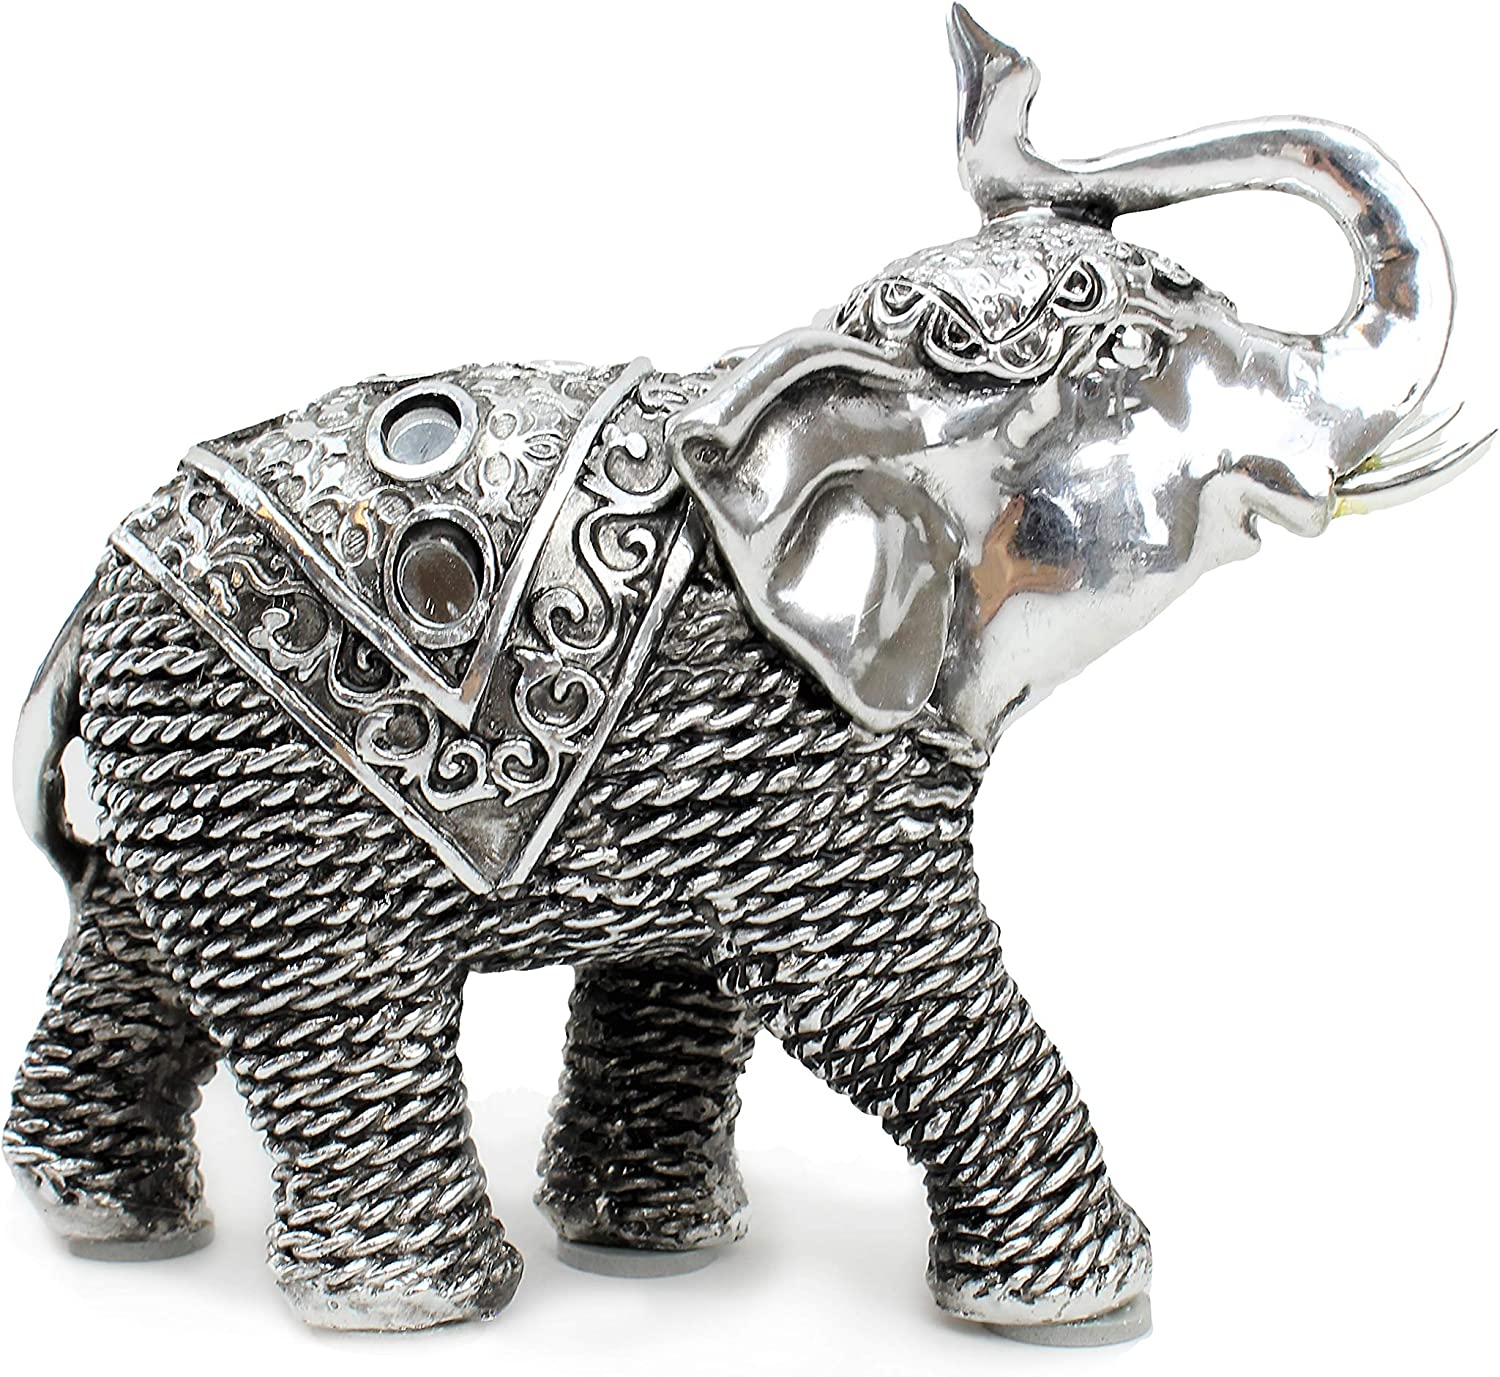 "Feng Shui 5.5""(L) Silver Elephant Wealth Lucky Figurine Home Decor Housewarming Gift Idea (G16653) ~ We Pay Your Sales Tax"